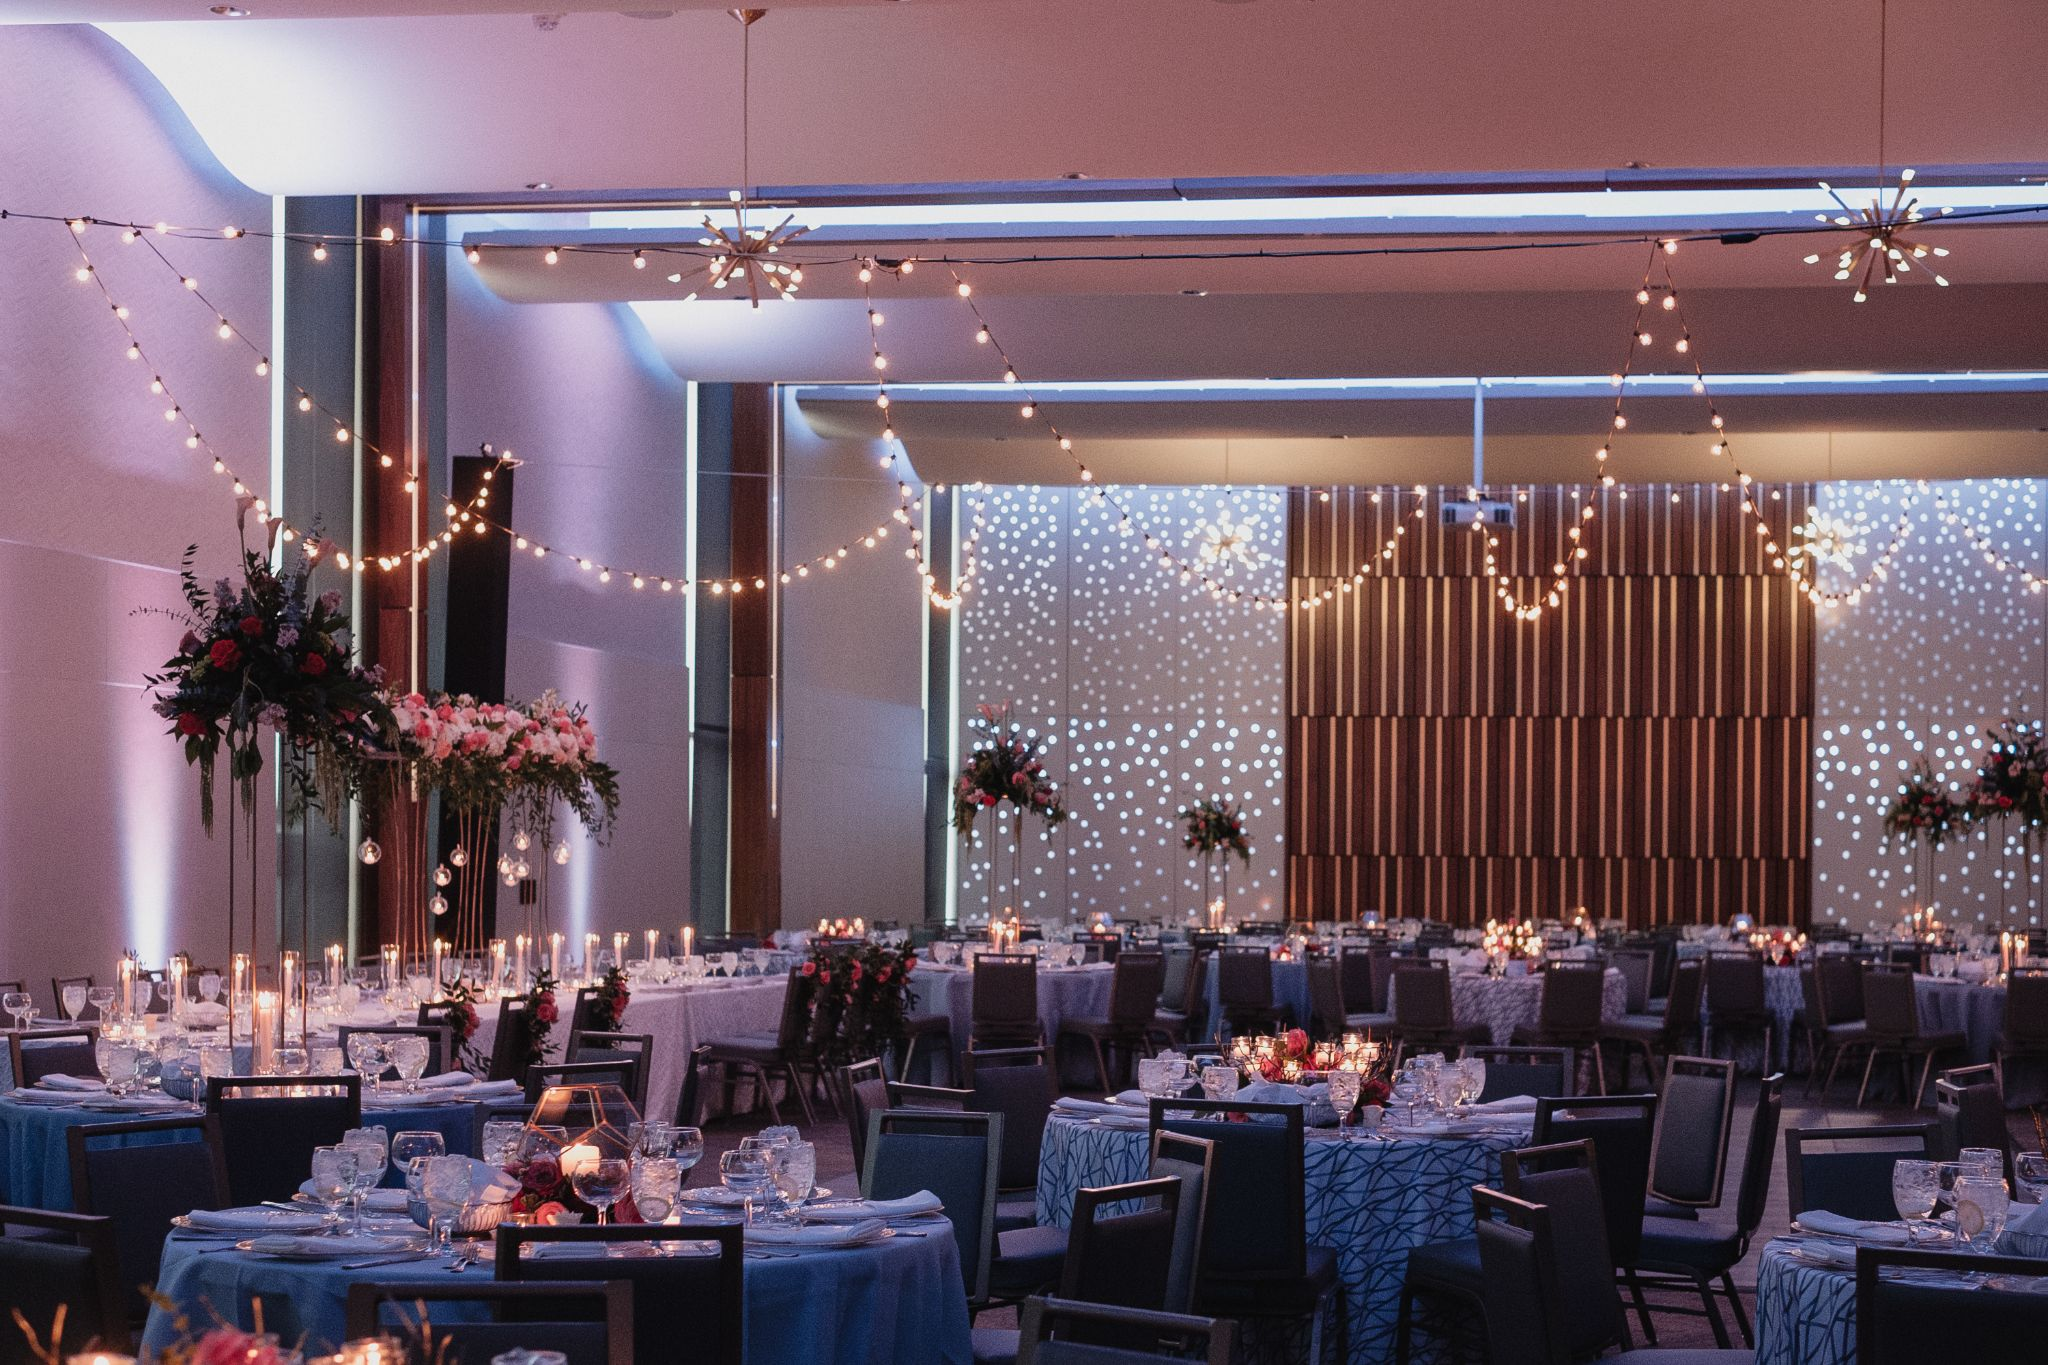 A large indoor wedding venue event with tables, lighting and decor.